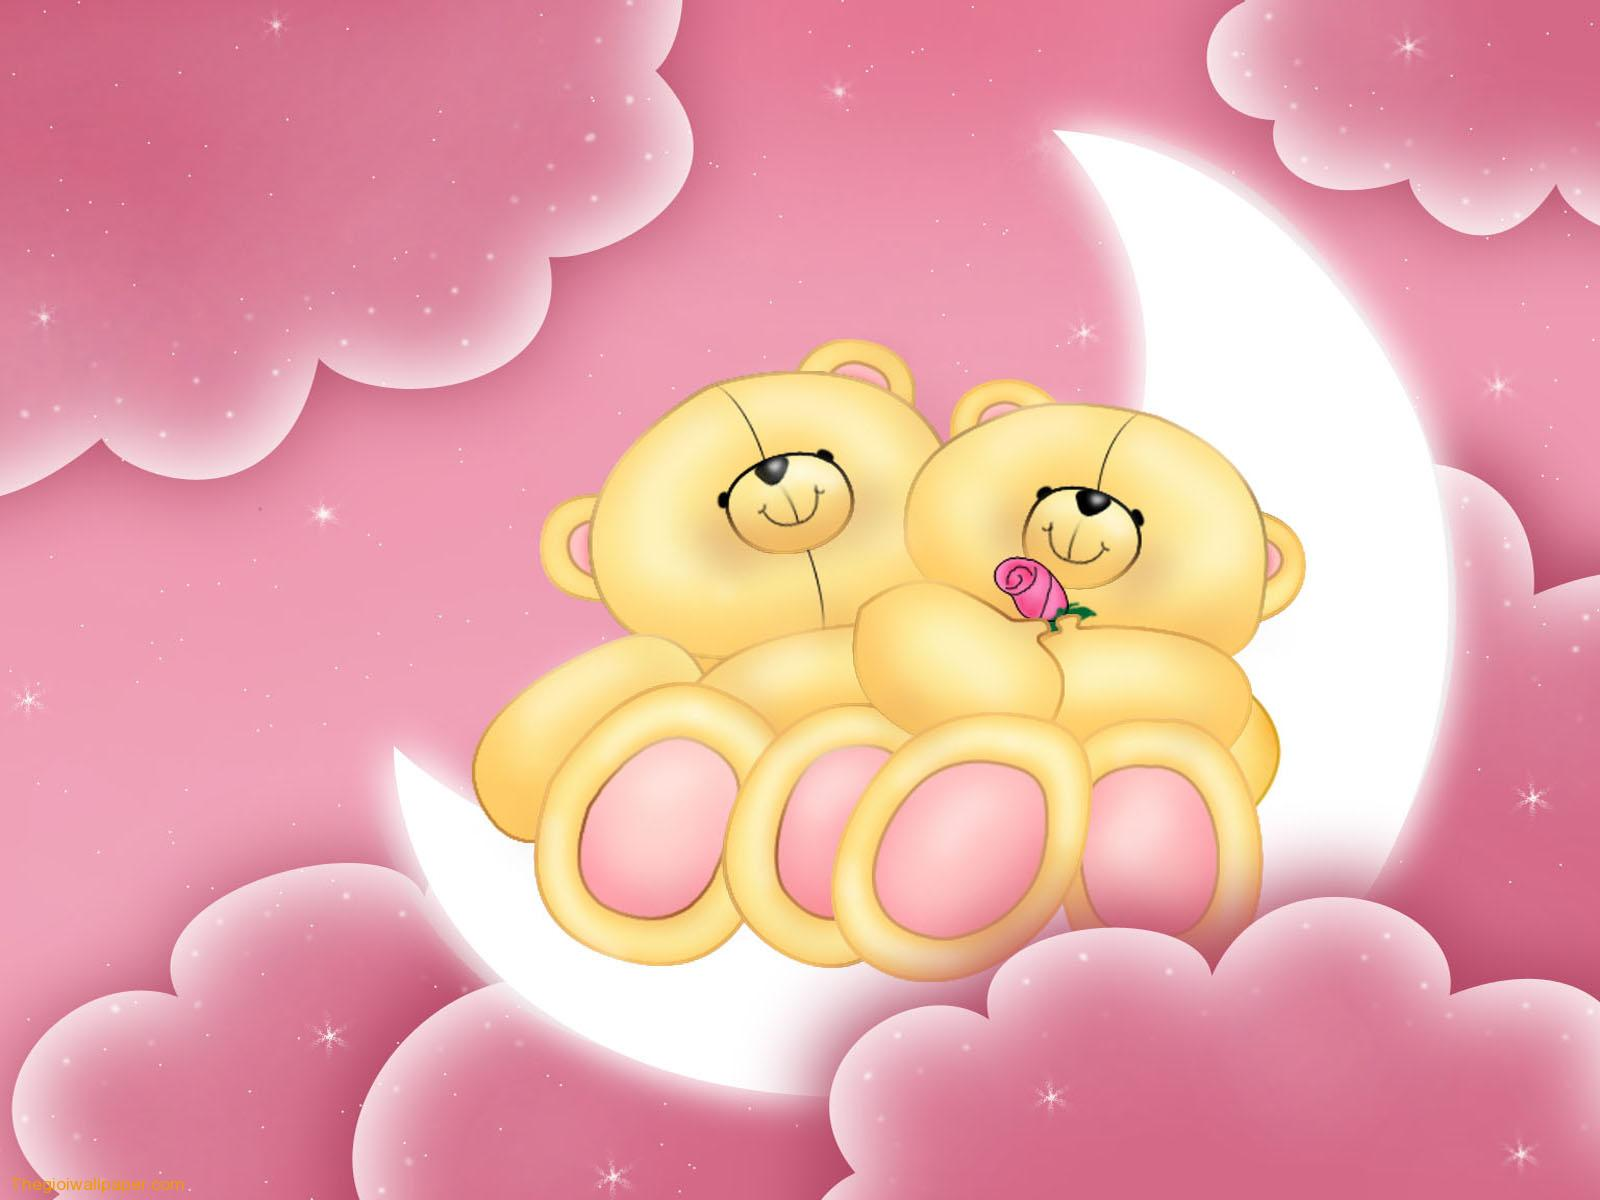 Cute Bears.jpeg In HD Wallpaper